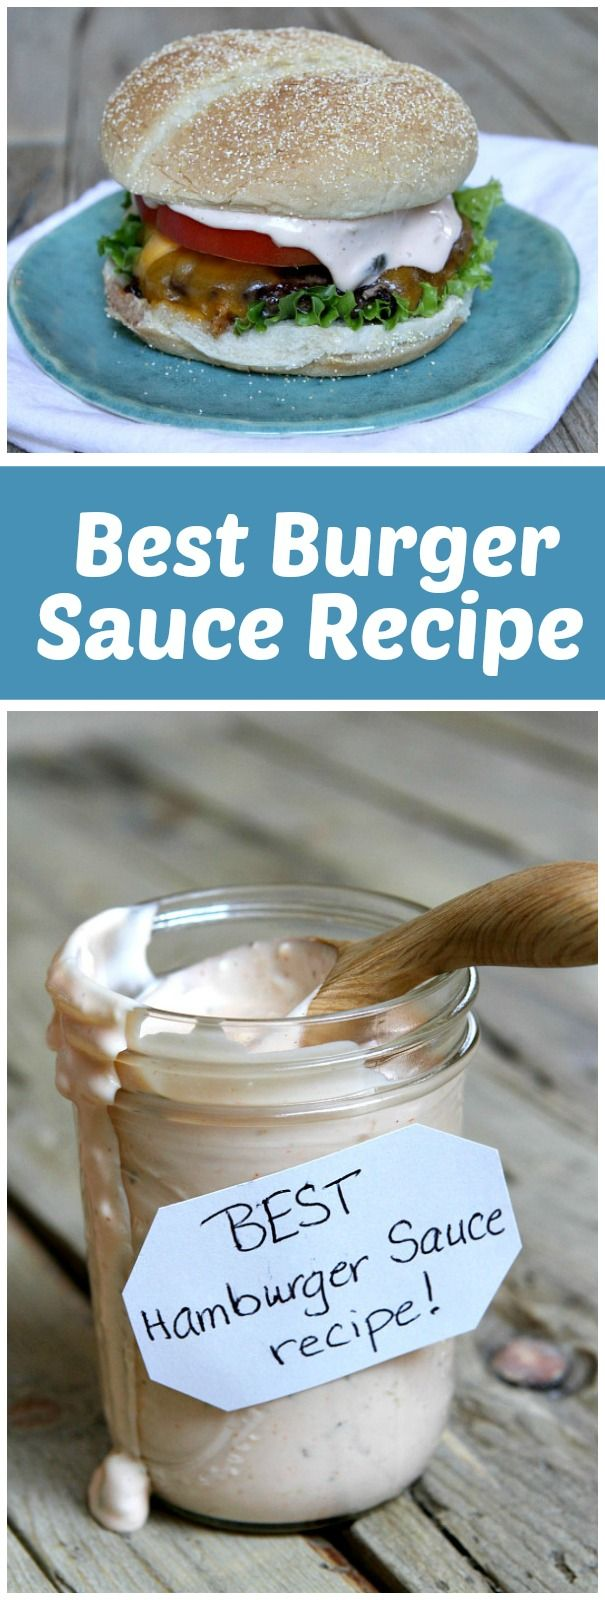 The absolute Best Burger Sauce recipe - for your home-grilled burgers!   From RecipeGirl.com.